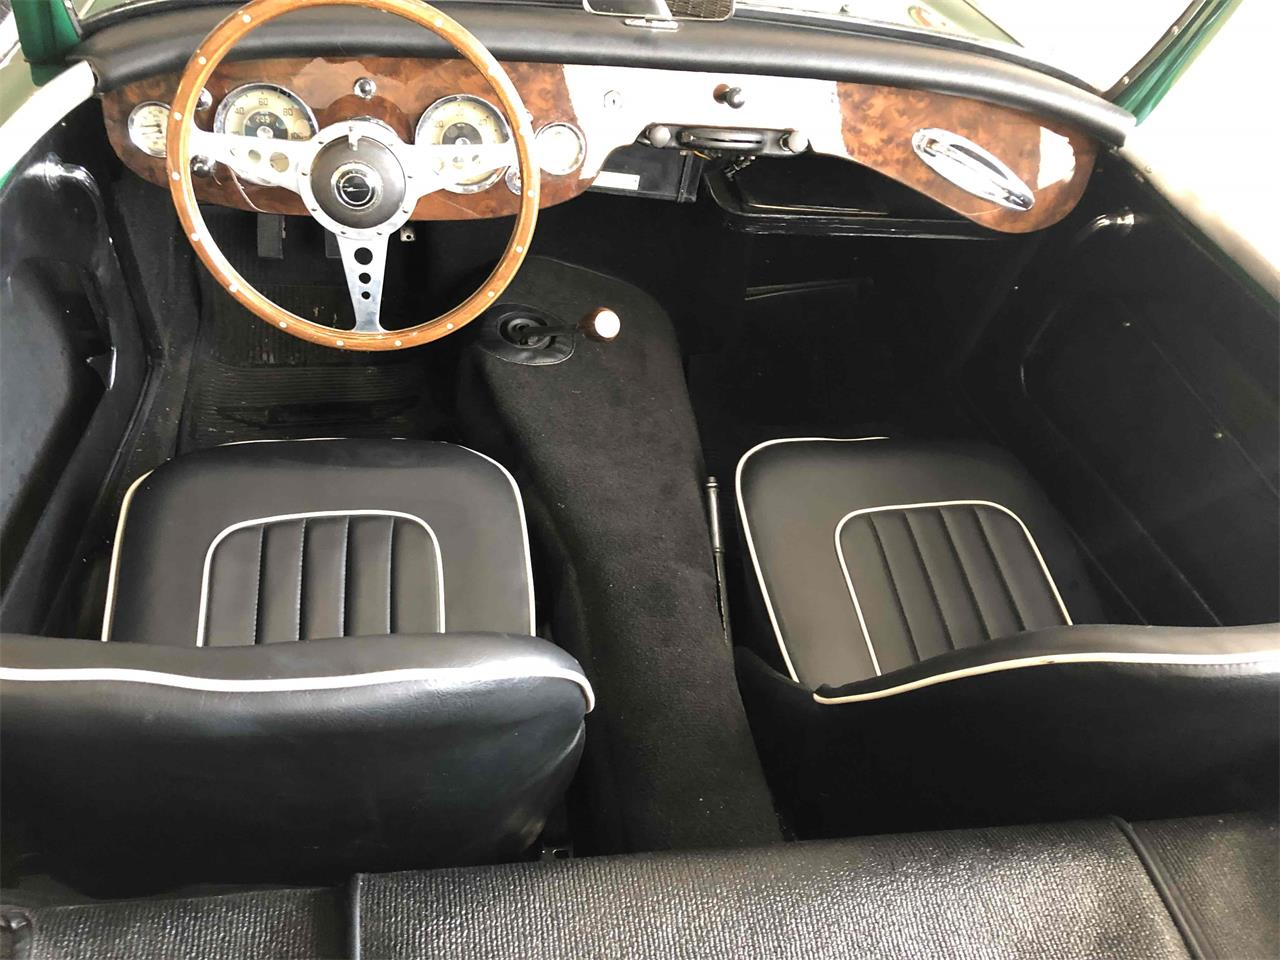 1958 Austin-Healey 100-6 (CC-1368110) for sale in Morrisville, North Carolina